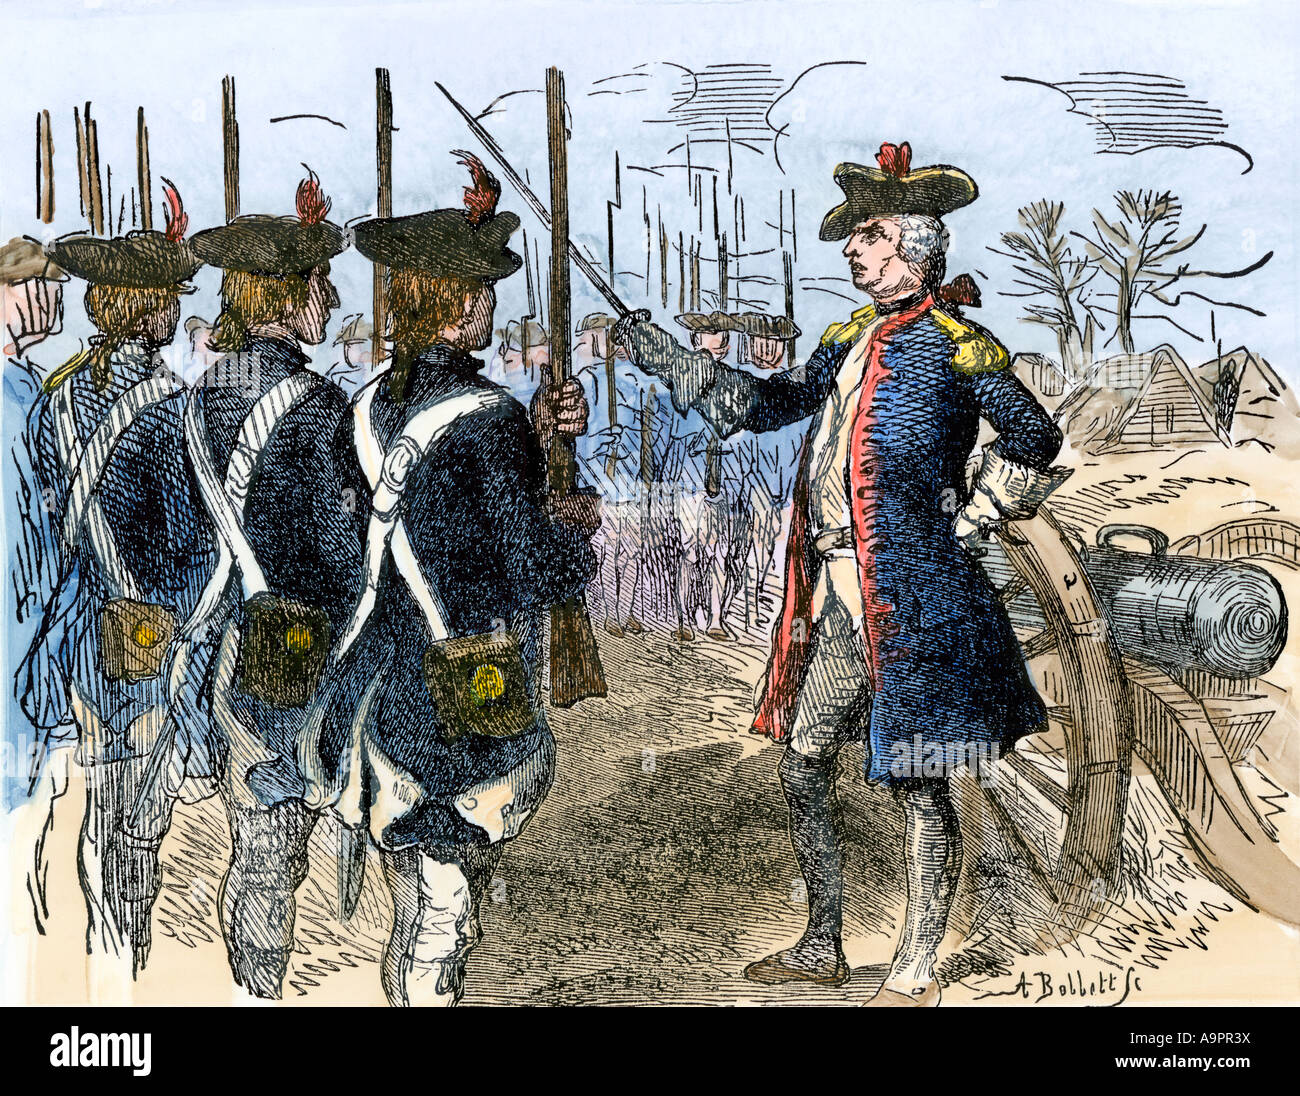 Baron Friedrich Wilhelm von Steuben drilling the American troops at Valley Forge during the Revolutionary War - Stock Image